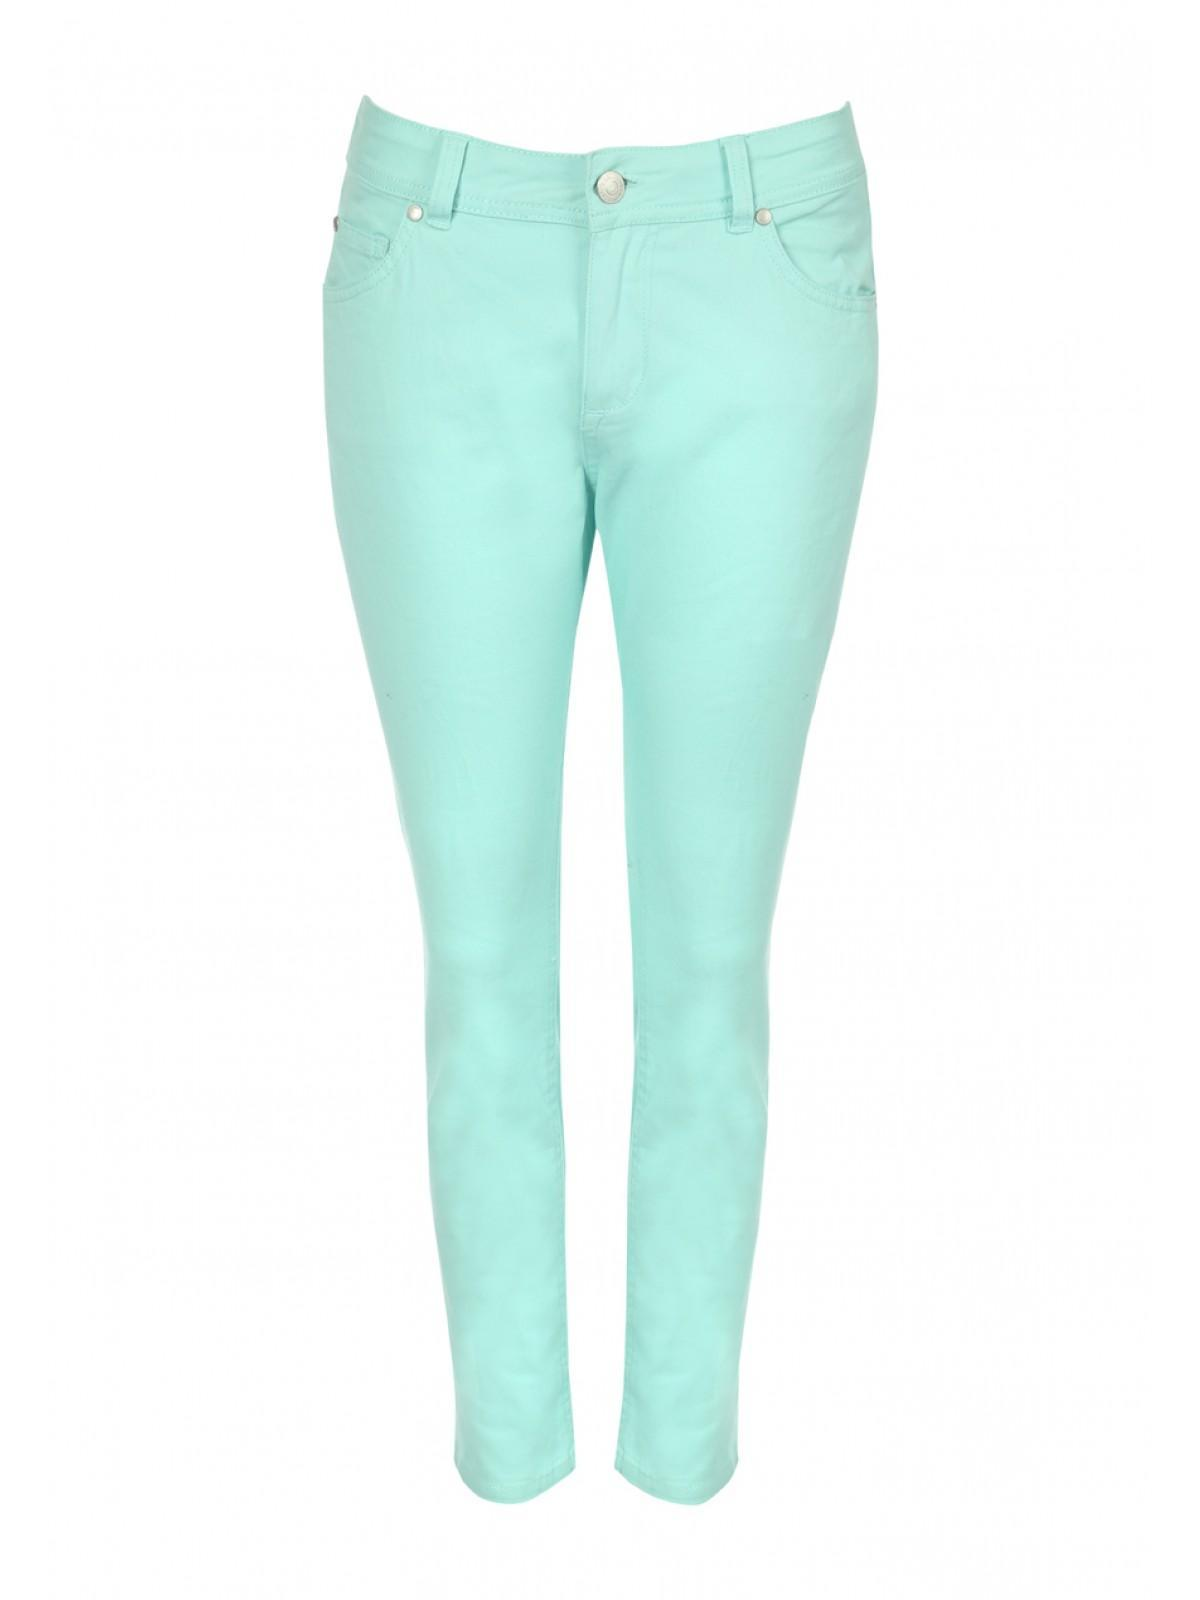 Womens Coloured Slim Jeans | Peacocks